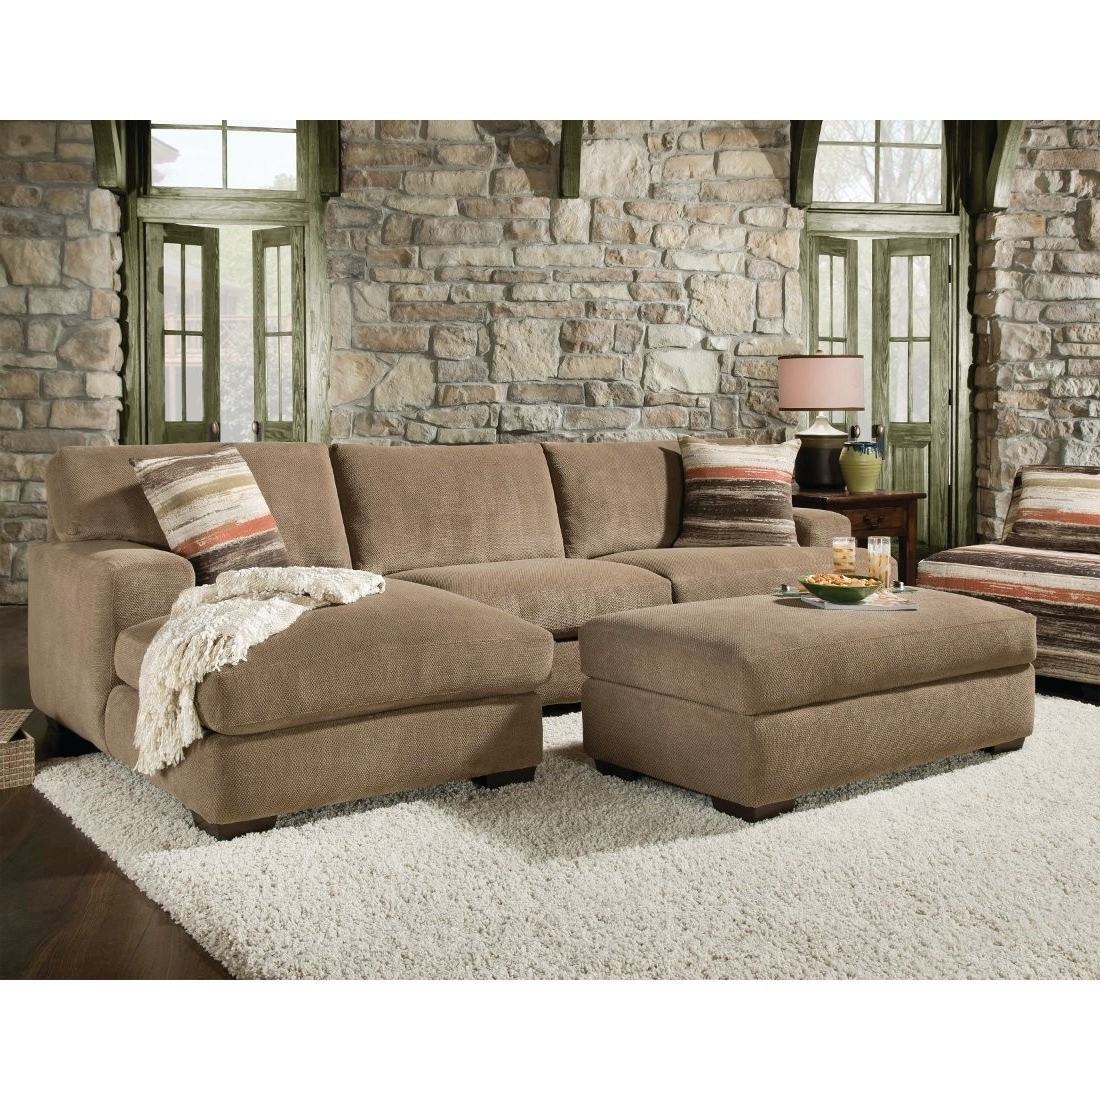 Recent Beautiful Sectional Sofa With Chaise And Ottoman Pictures With Sofas With Ottoman (View 11 of 15)